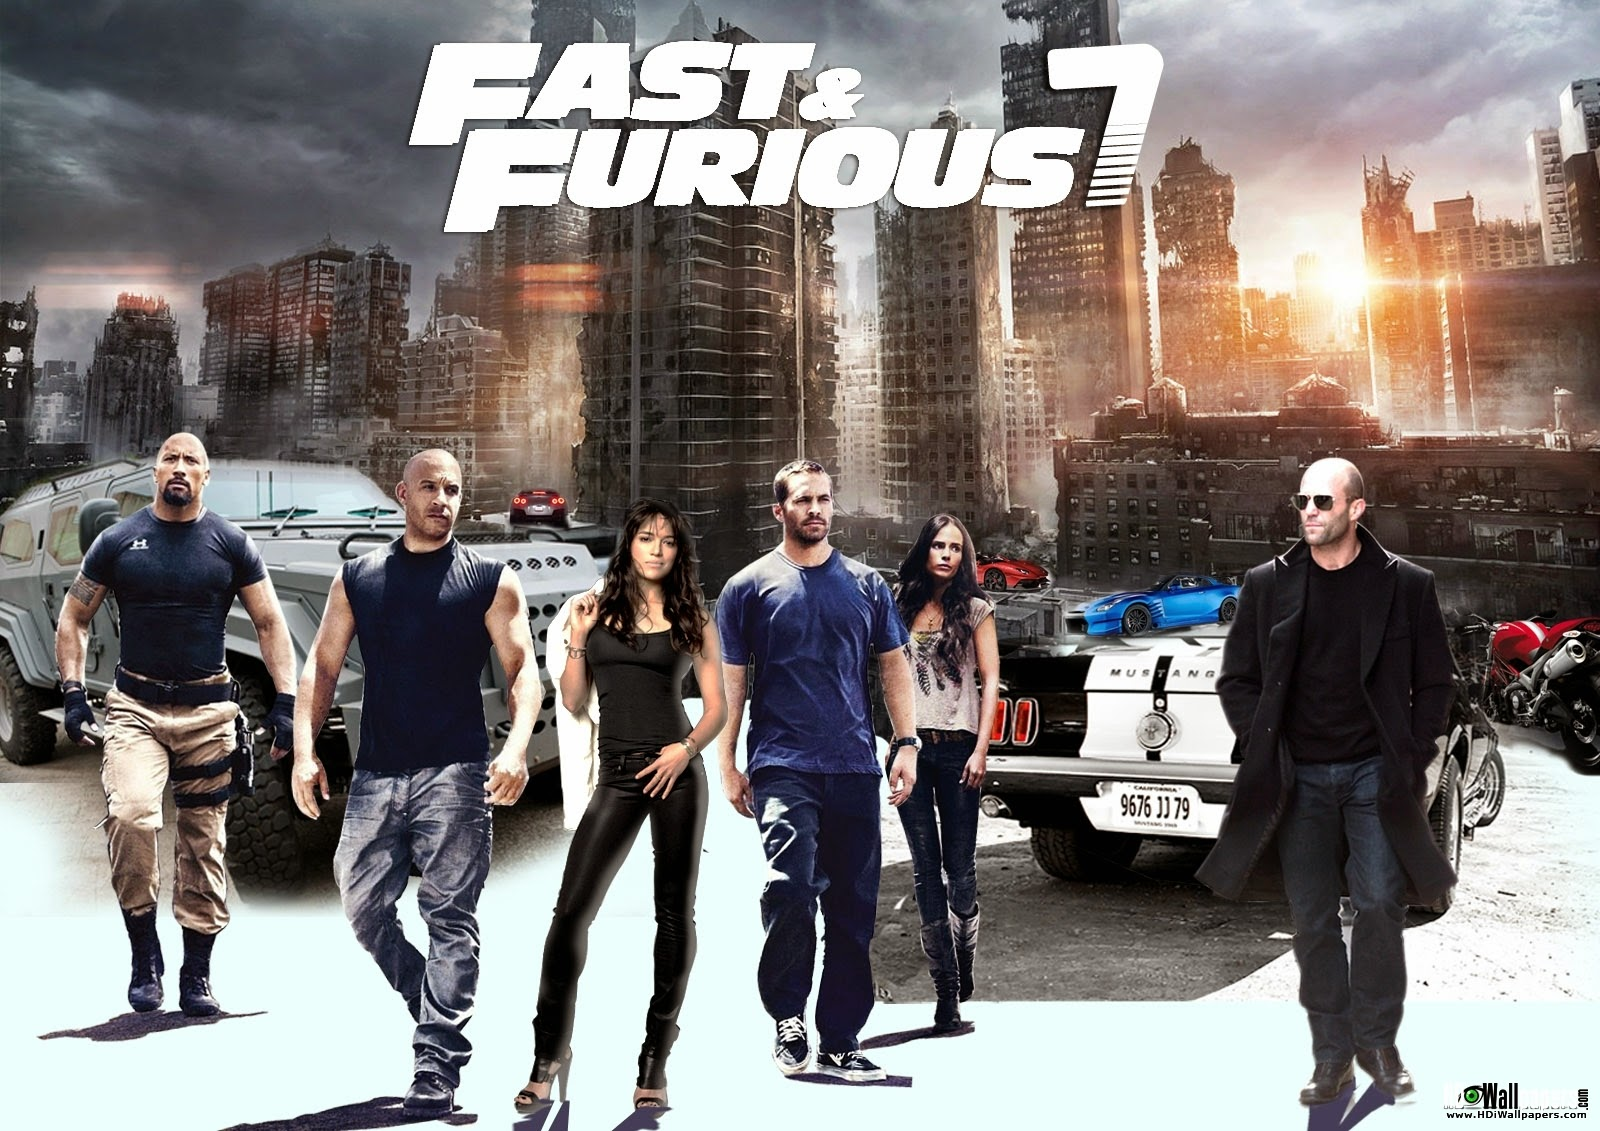 Cand Apare Fast And Furious 8 Fast And Furious 7 - Online Hd Subtitrat - Movieplex Hd